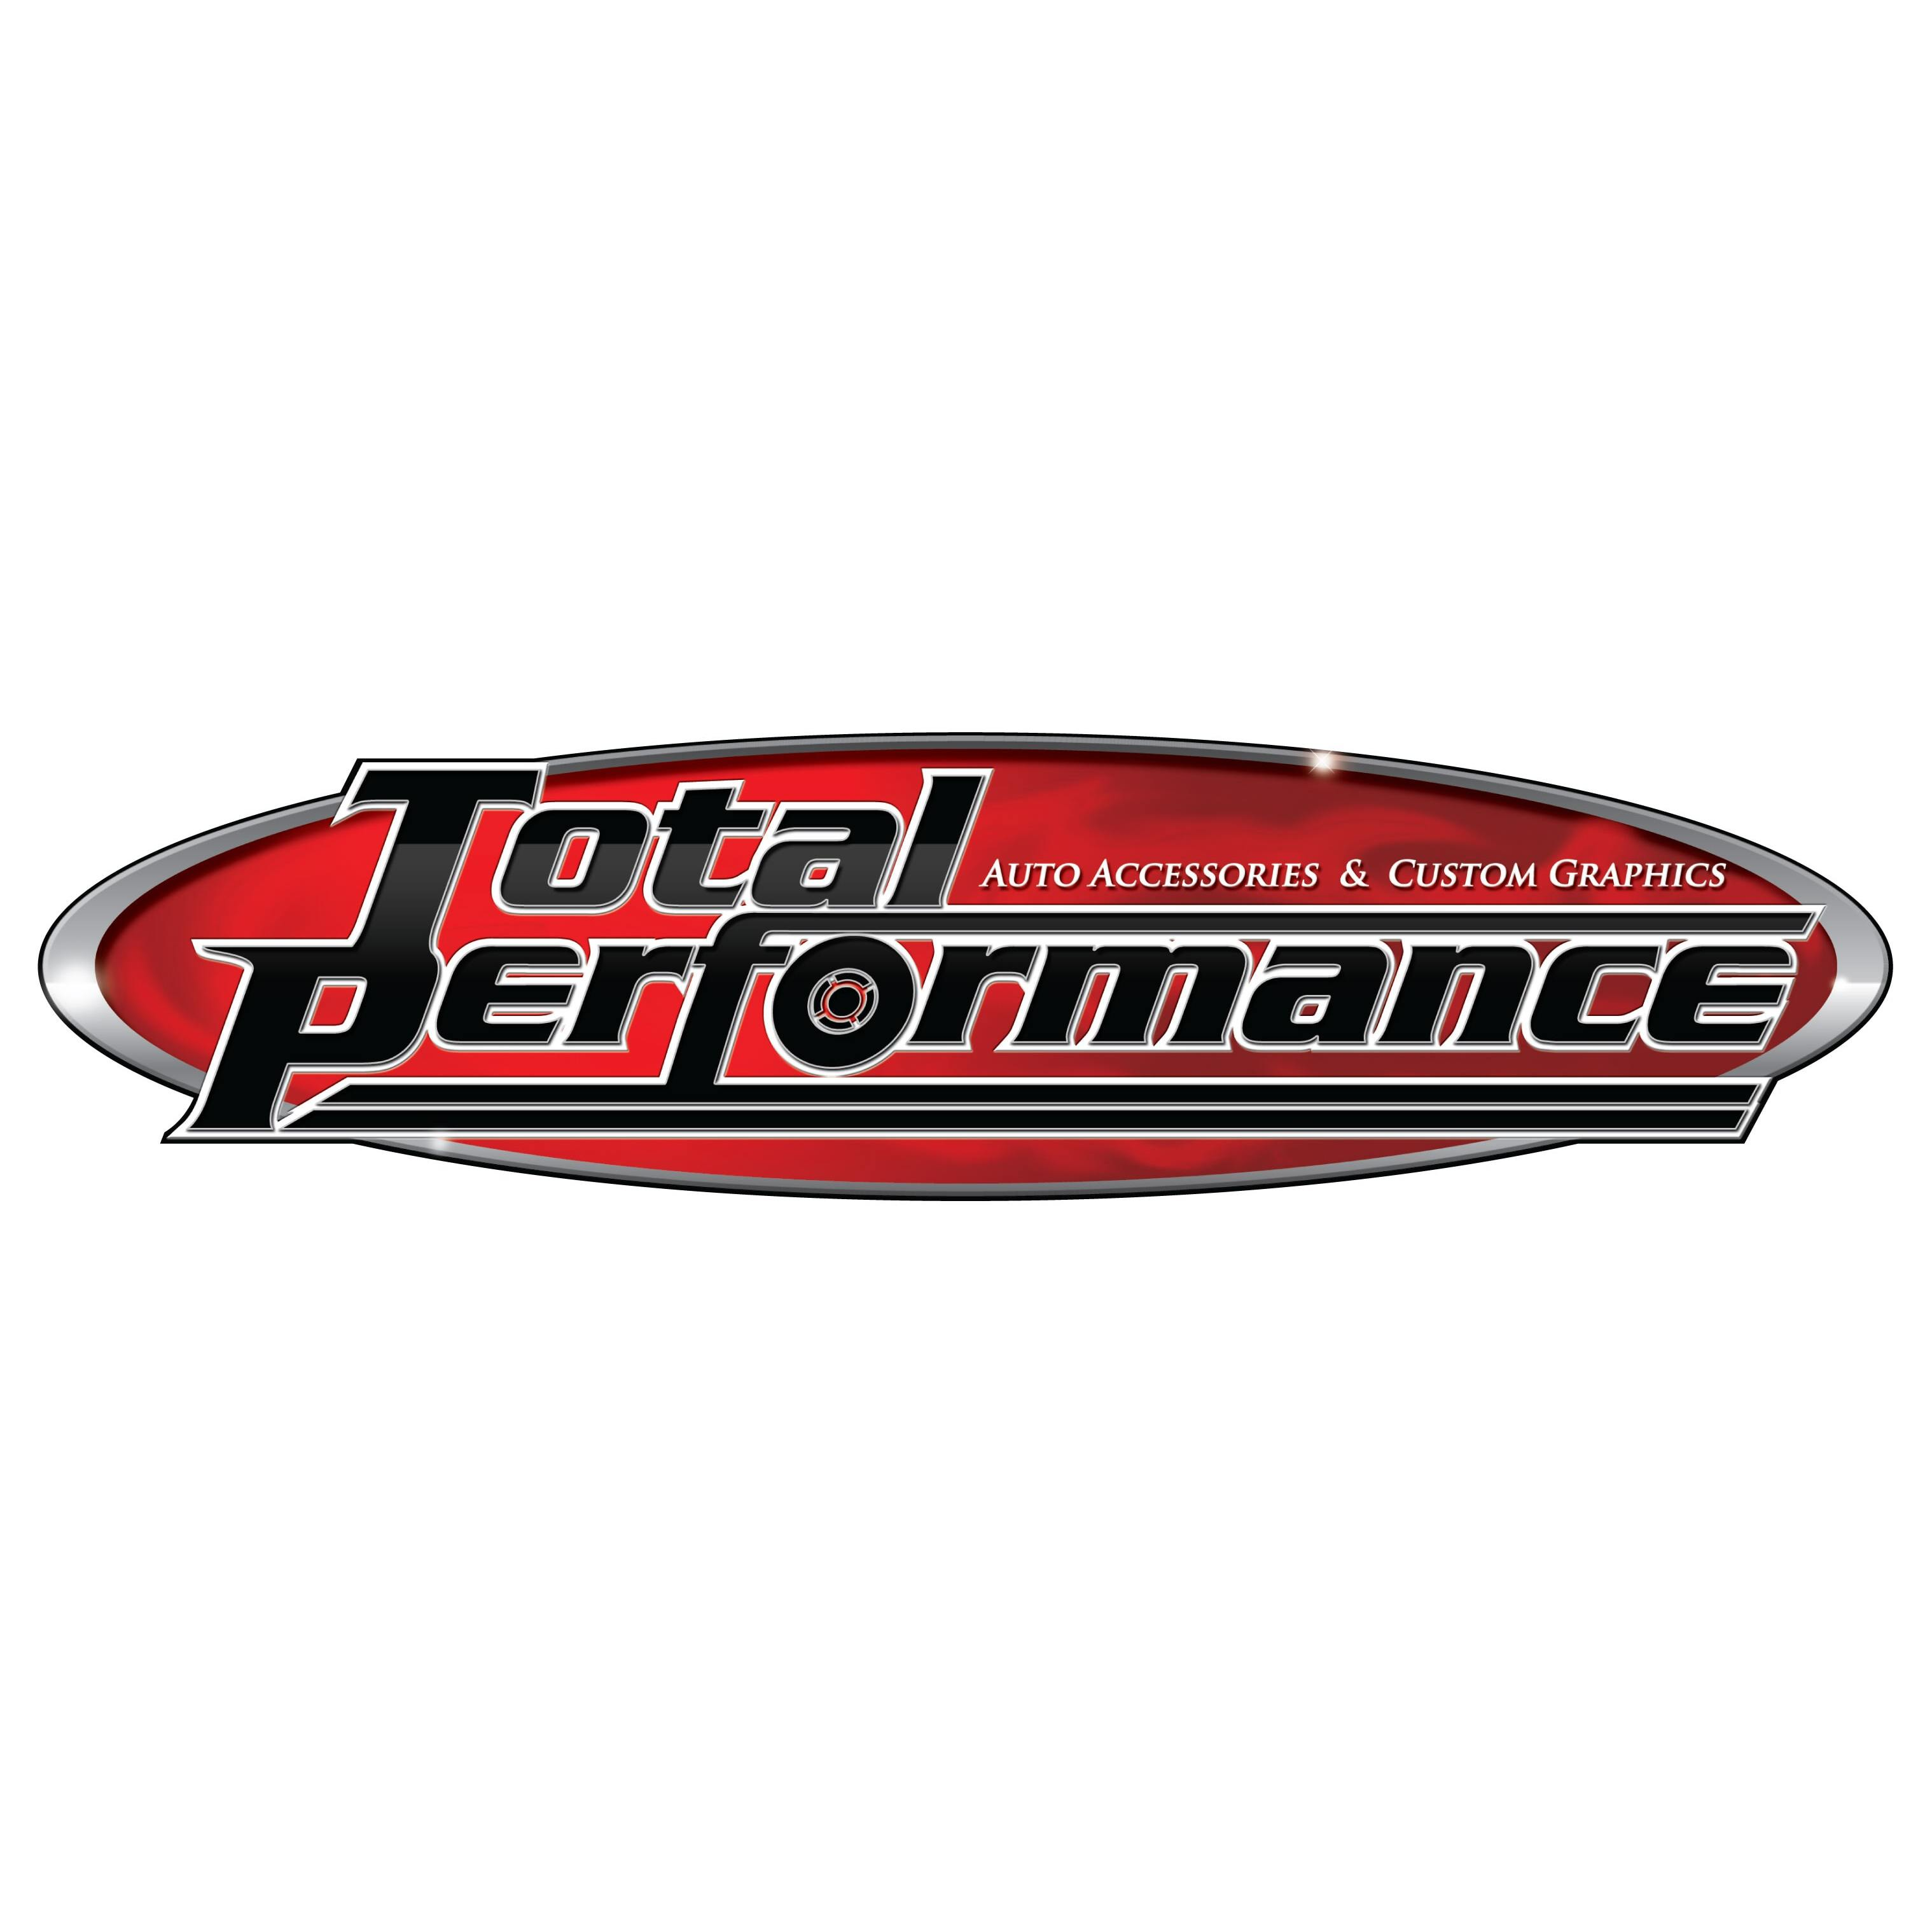 Total  Performance Inc. - Fort Wayne, IN - Copying & Printing Services